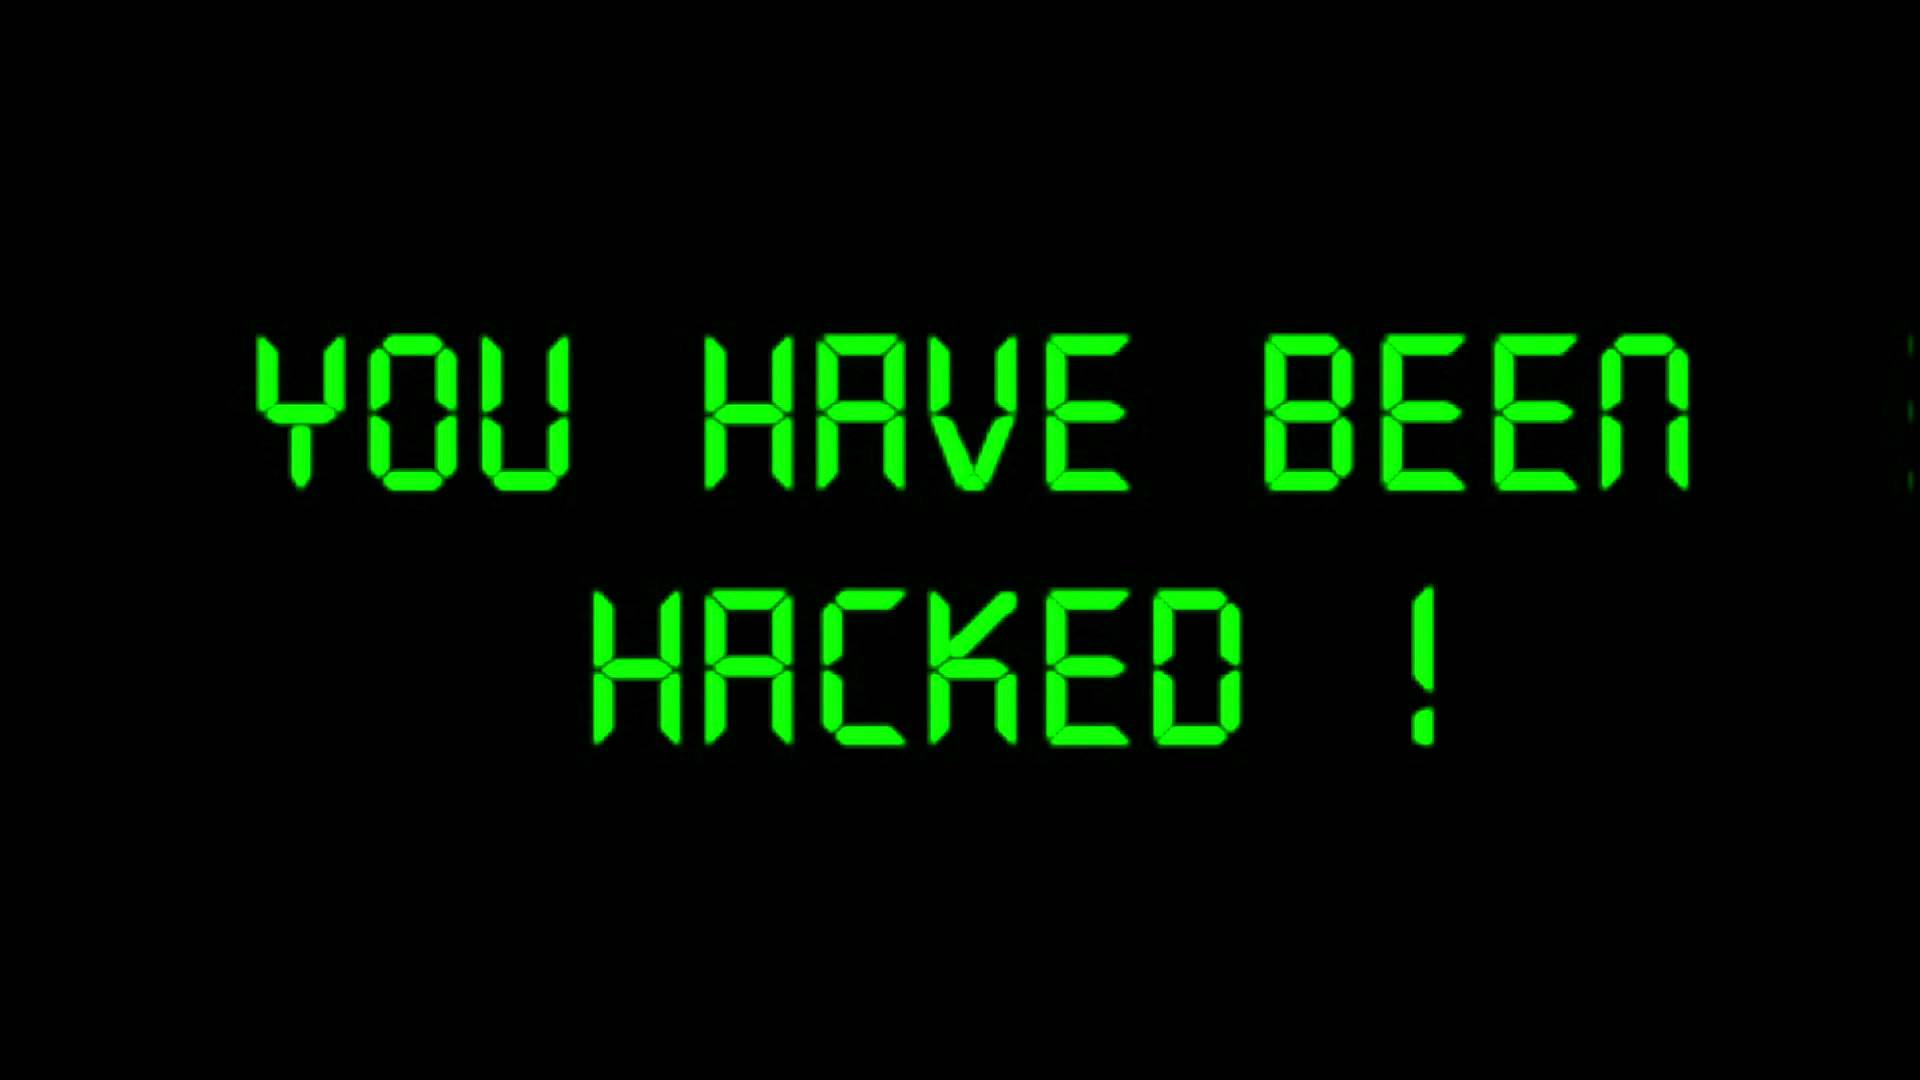 computer is hacked